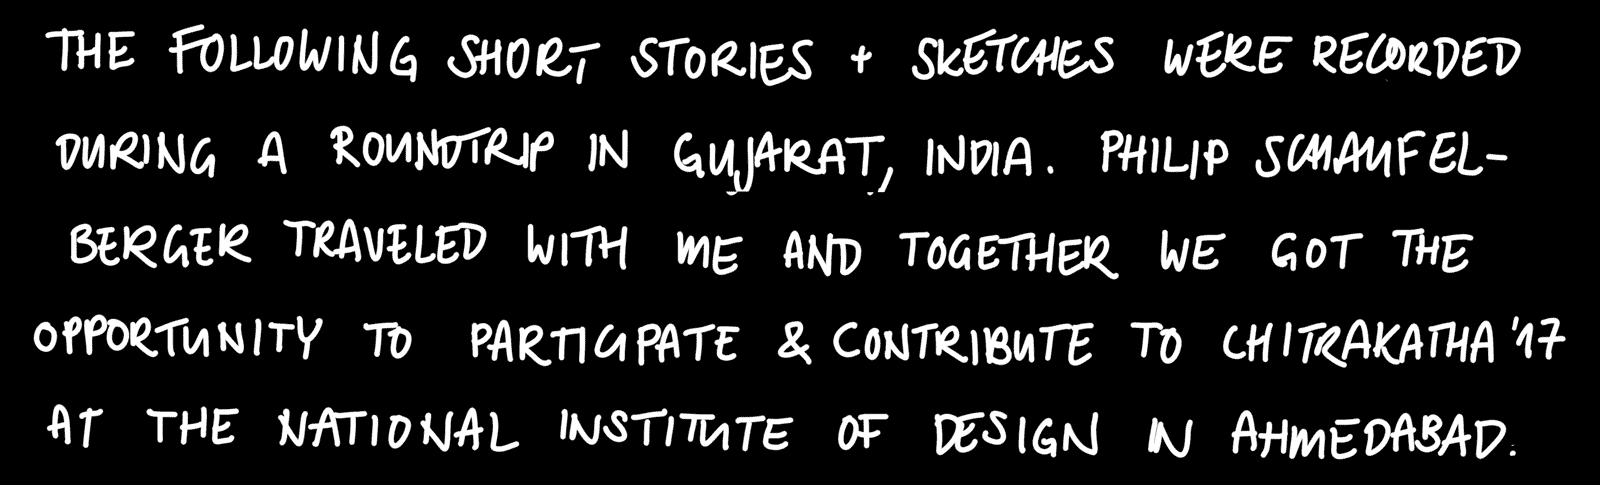 THE FOLLOWING SHORT STORIES + SKETCHES WERE RECORDED DURING A ROUNDTRIP IN GUJARAT, INDIA IN 2017. PHILIP SCHAUFELBERGER TRAVELED WITH ME AND TOGETHER WE GOT THE OPPORTUNITY TO PARTICIPATE & CONTRIBUTE TO CHITRAKATHA 17 AT THE NATIONAL INSTITUTE OF DESIGN IN AHMEDABAD.